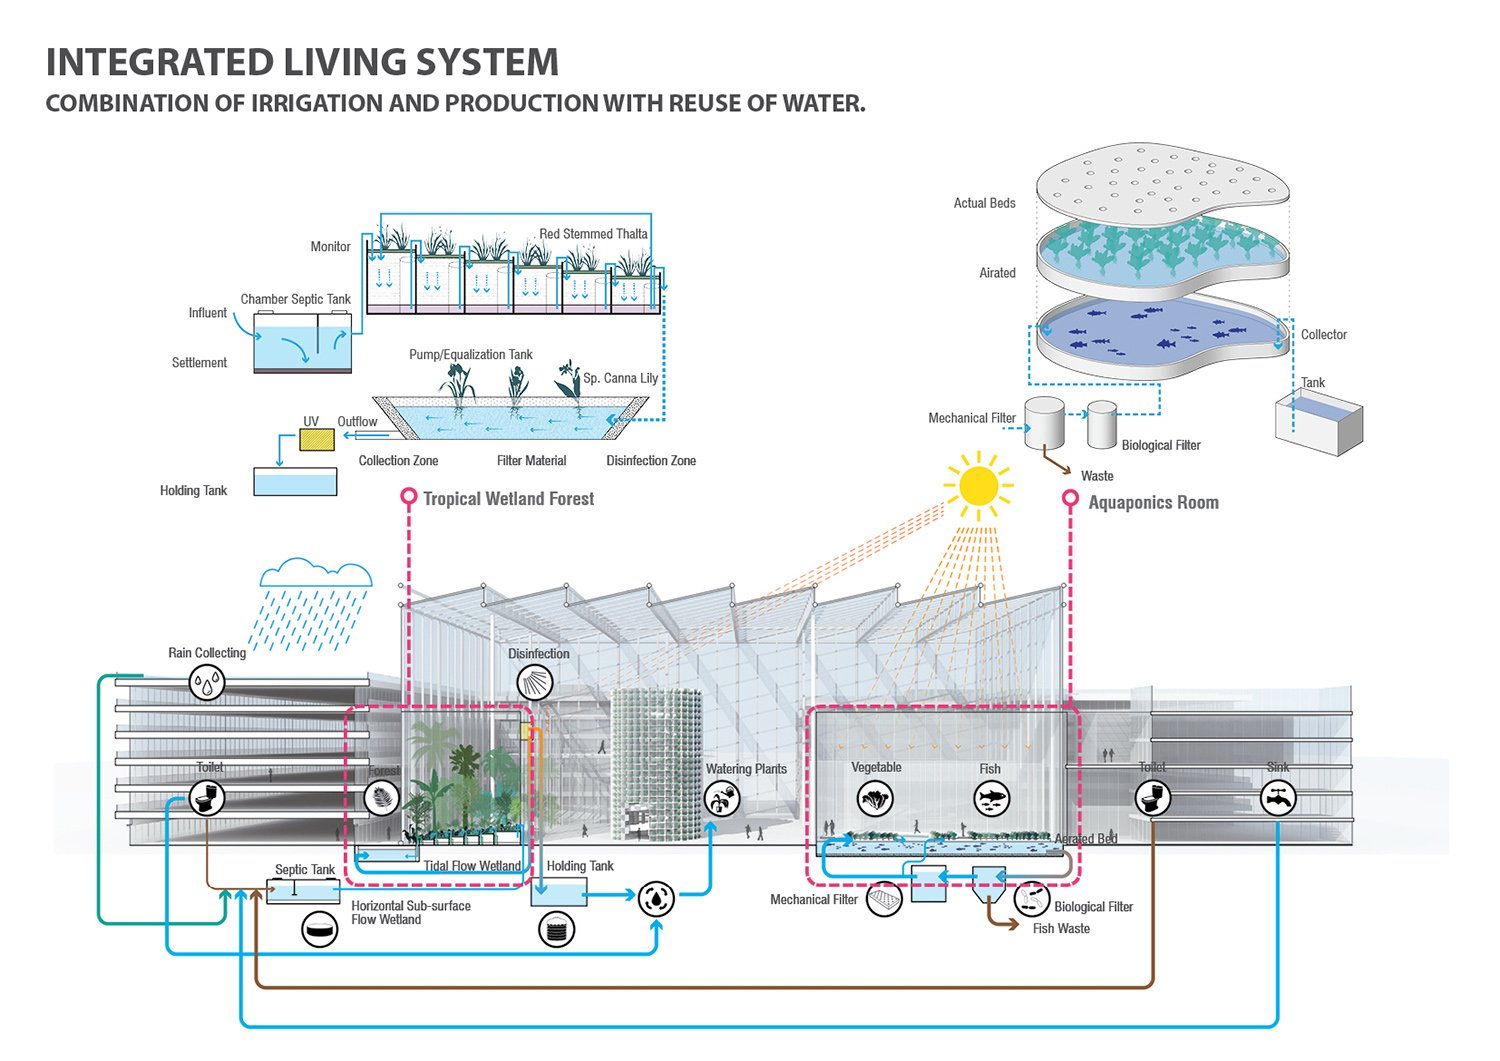 INTEGRATED LIVING SYSTEM